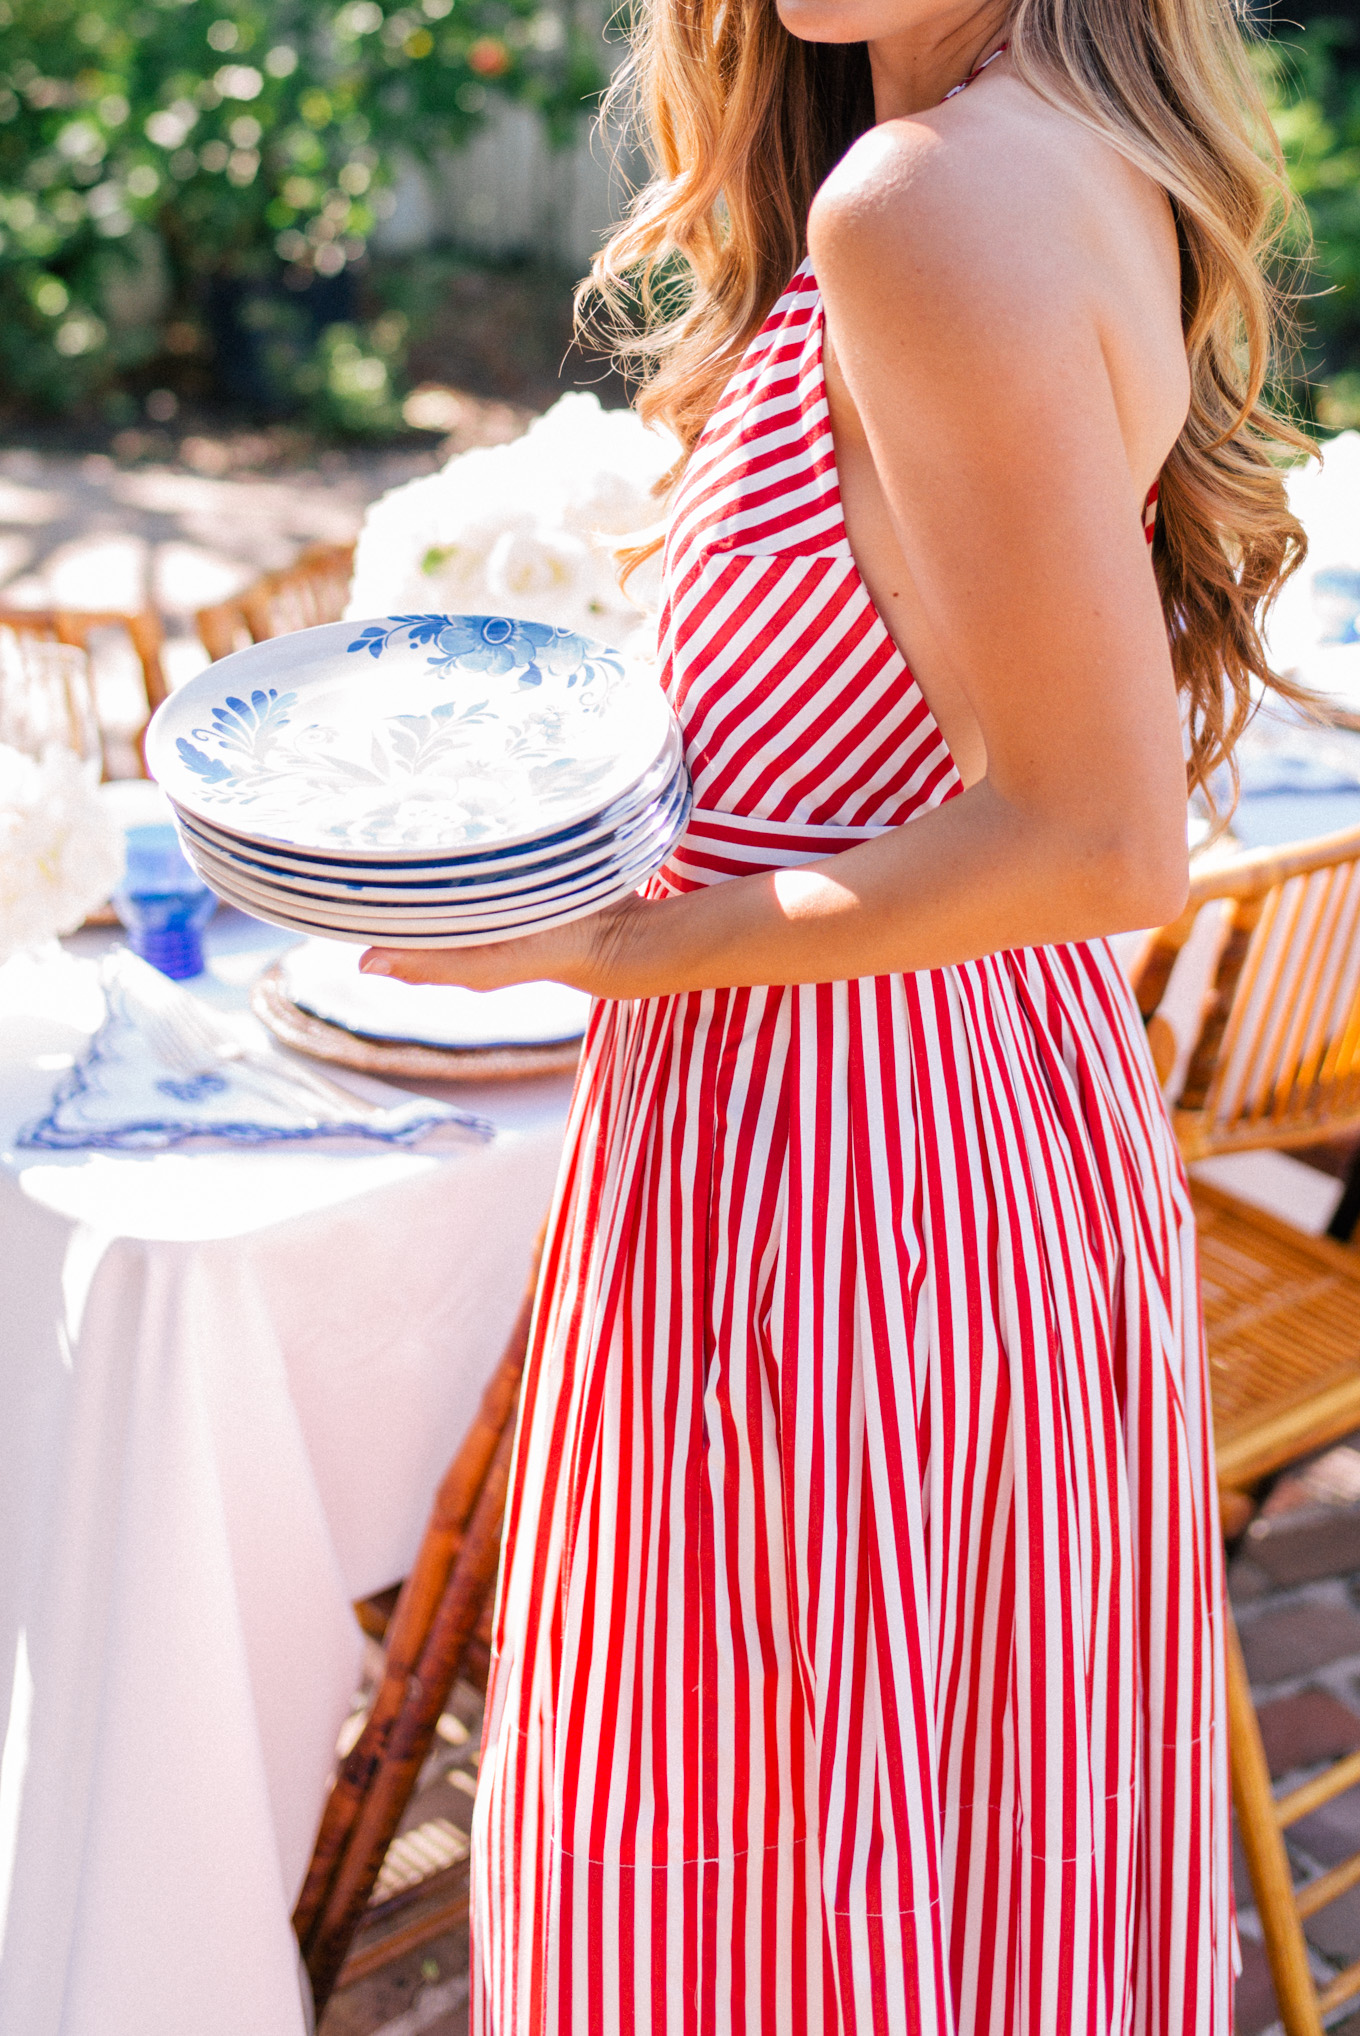 gmg-fourth-of-july-table-1009379